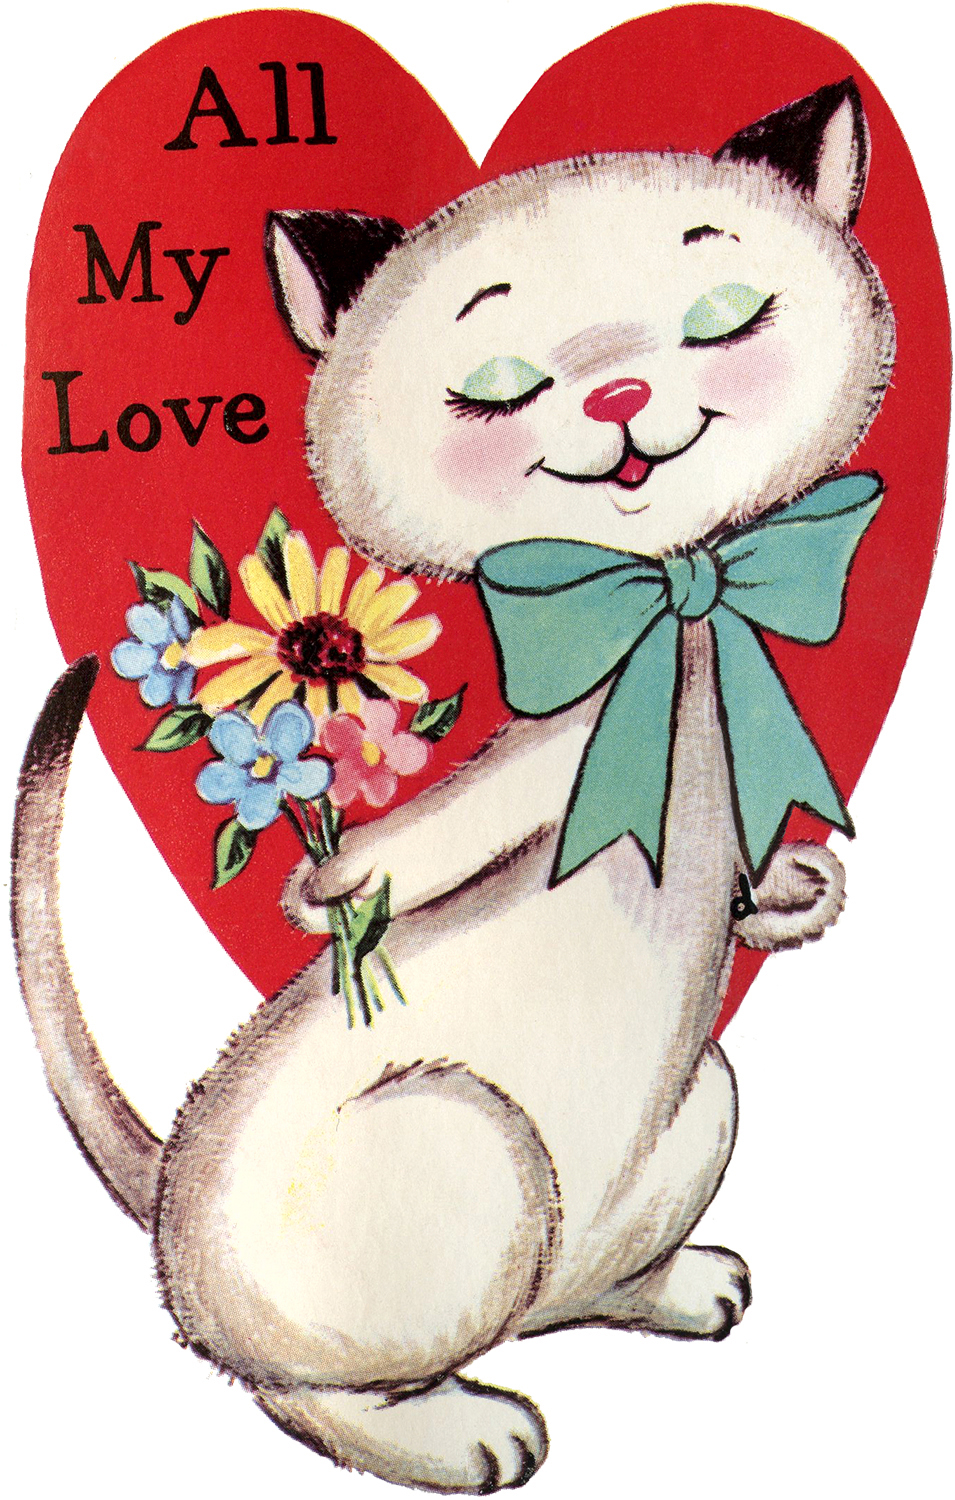 image about Free Printable Vintage Valentine Cards identify 9 Retro Valentines with Pets! - The Graphics Fairy